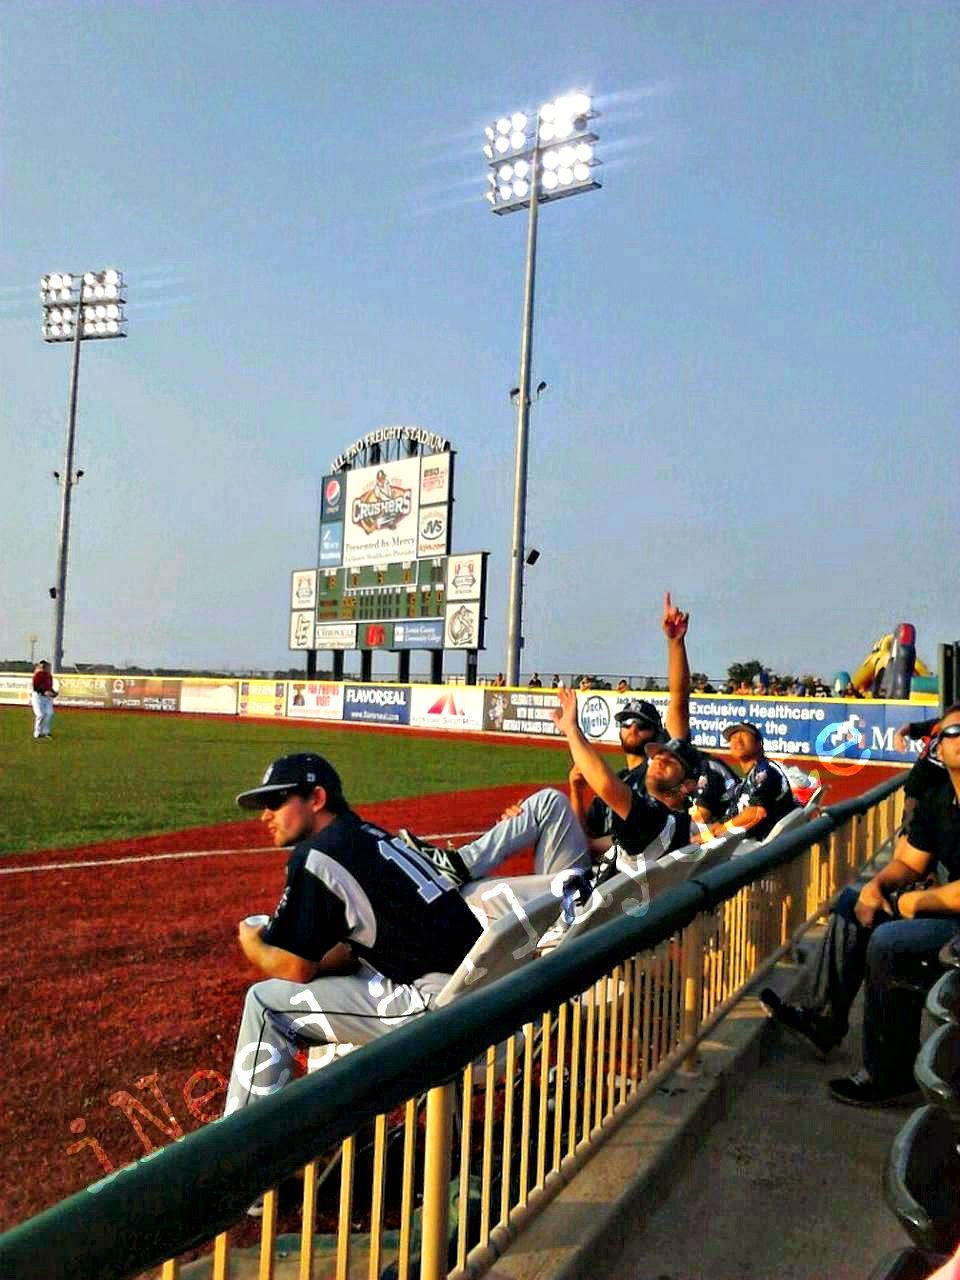 Lake Erie Crushers game in Avon, Ohio